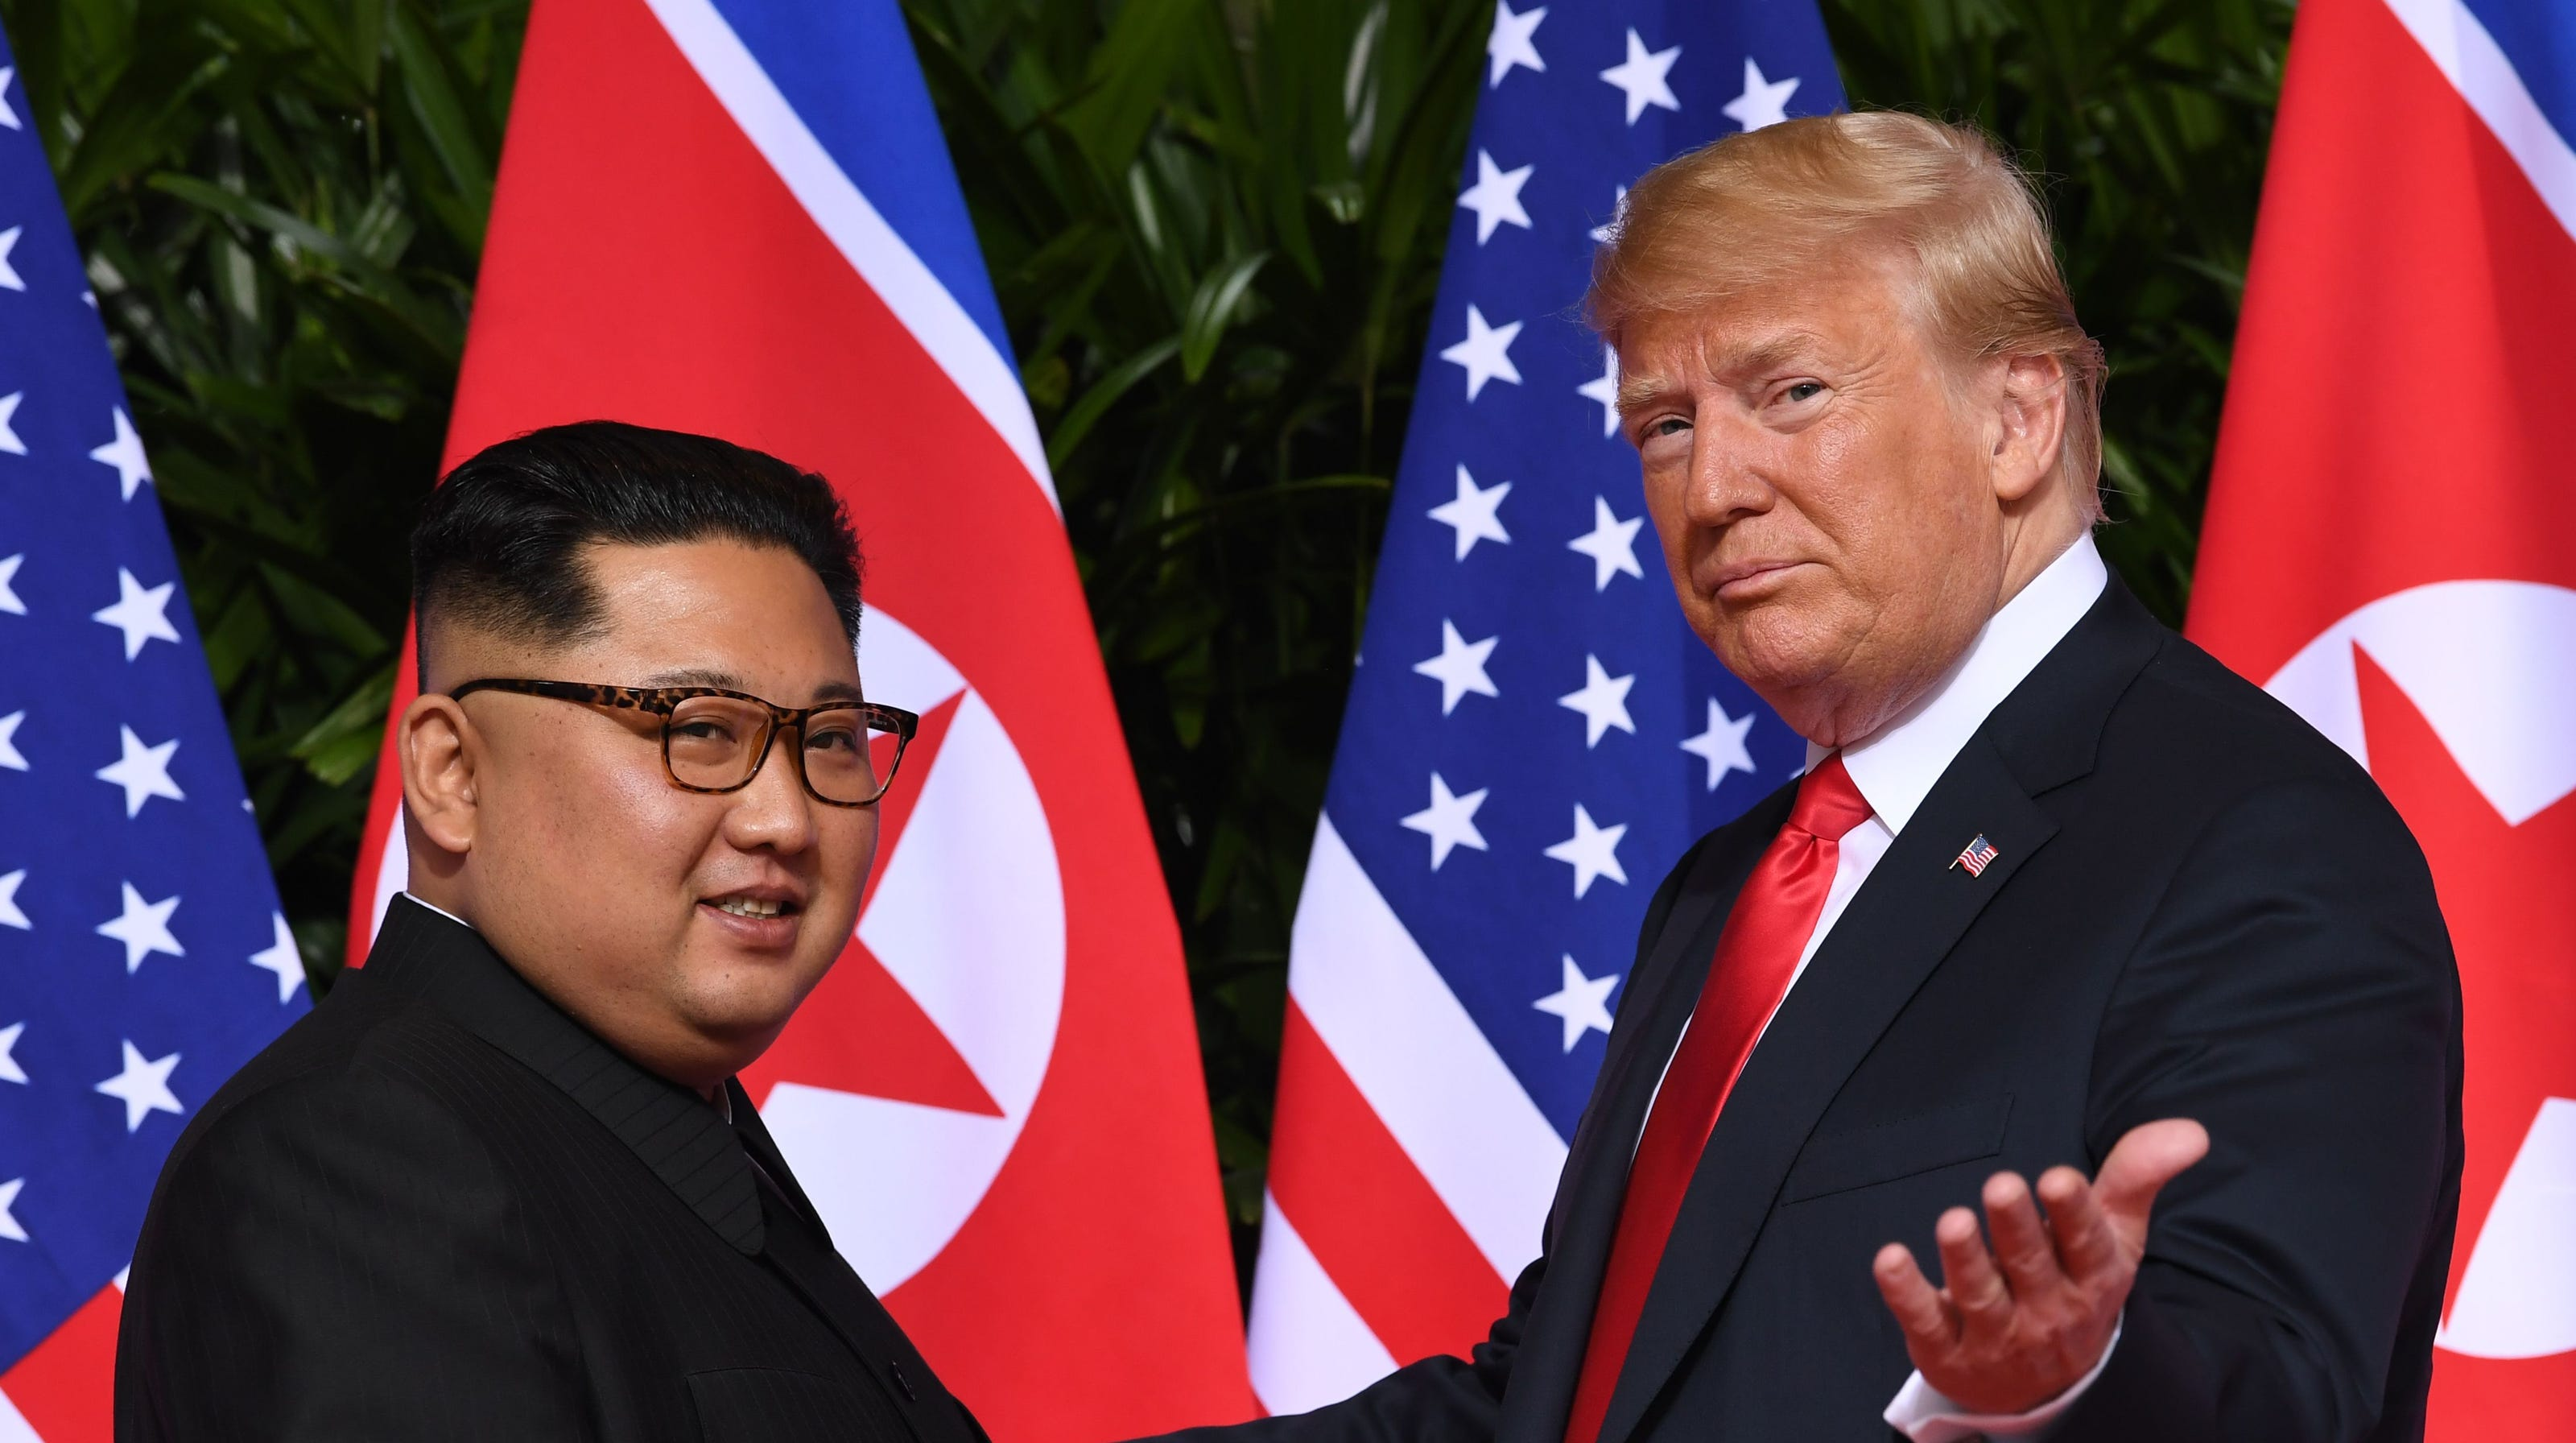 Trump to meet North Korea's Kim Jong Un in Vietnam in two weeks for the pair's second summit